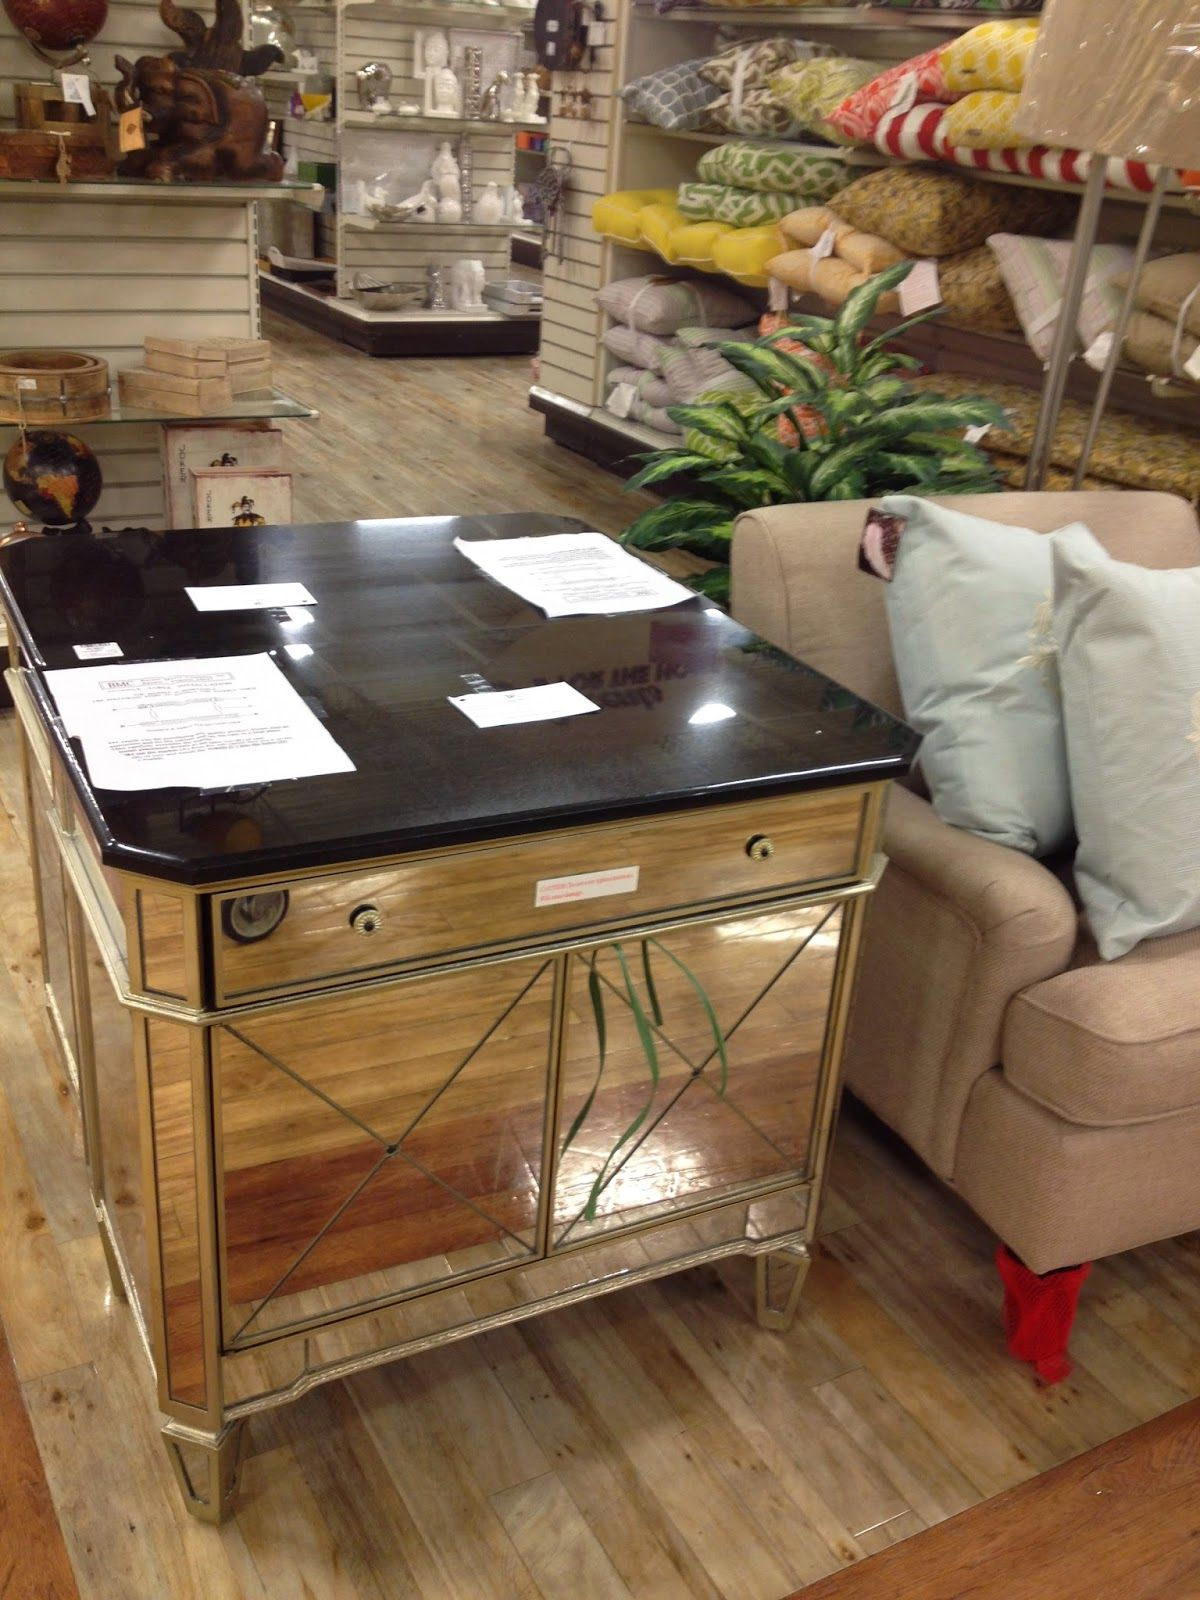 Home Sense Finds June 8 Mirrored Night Tables Already